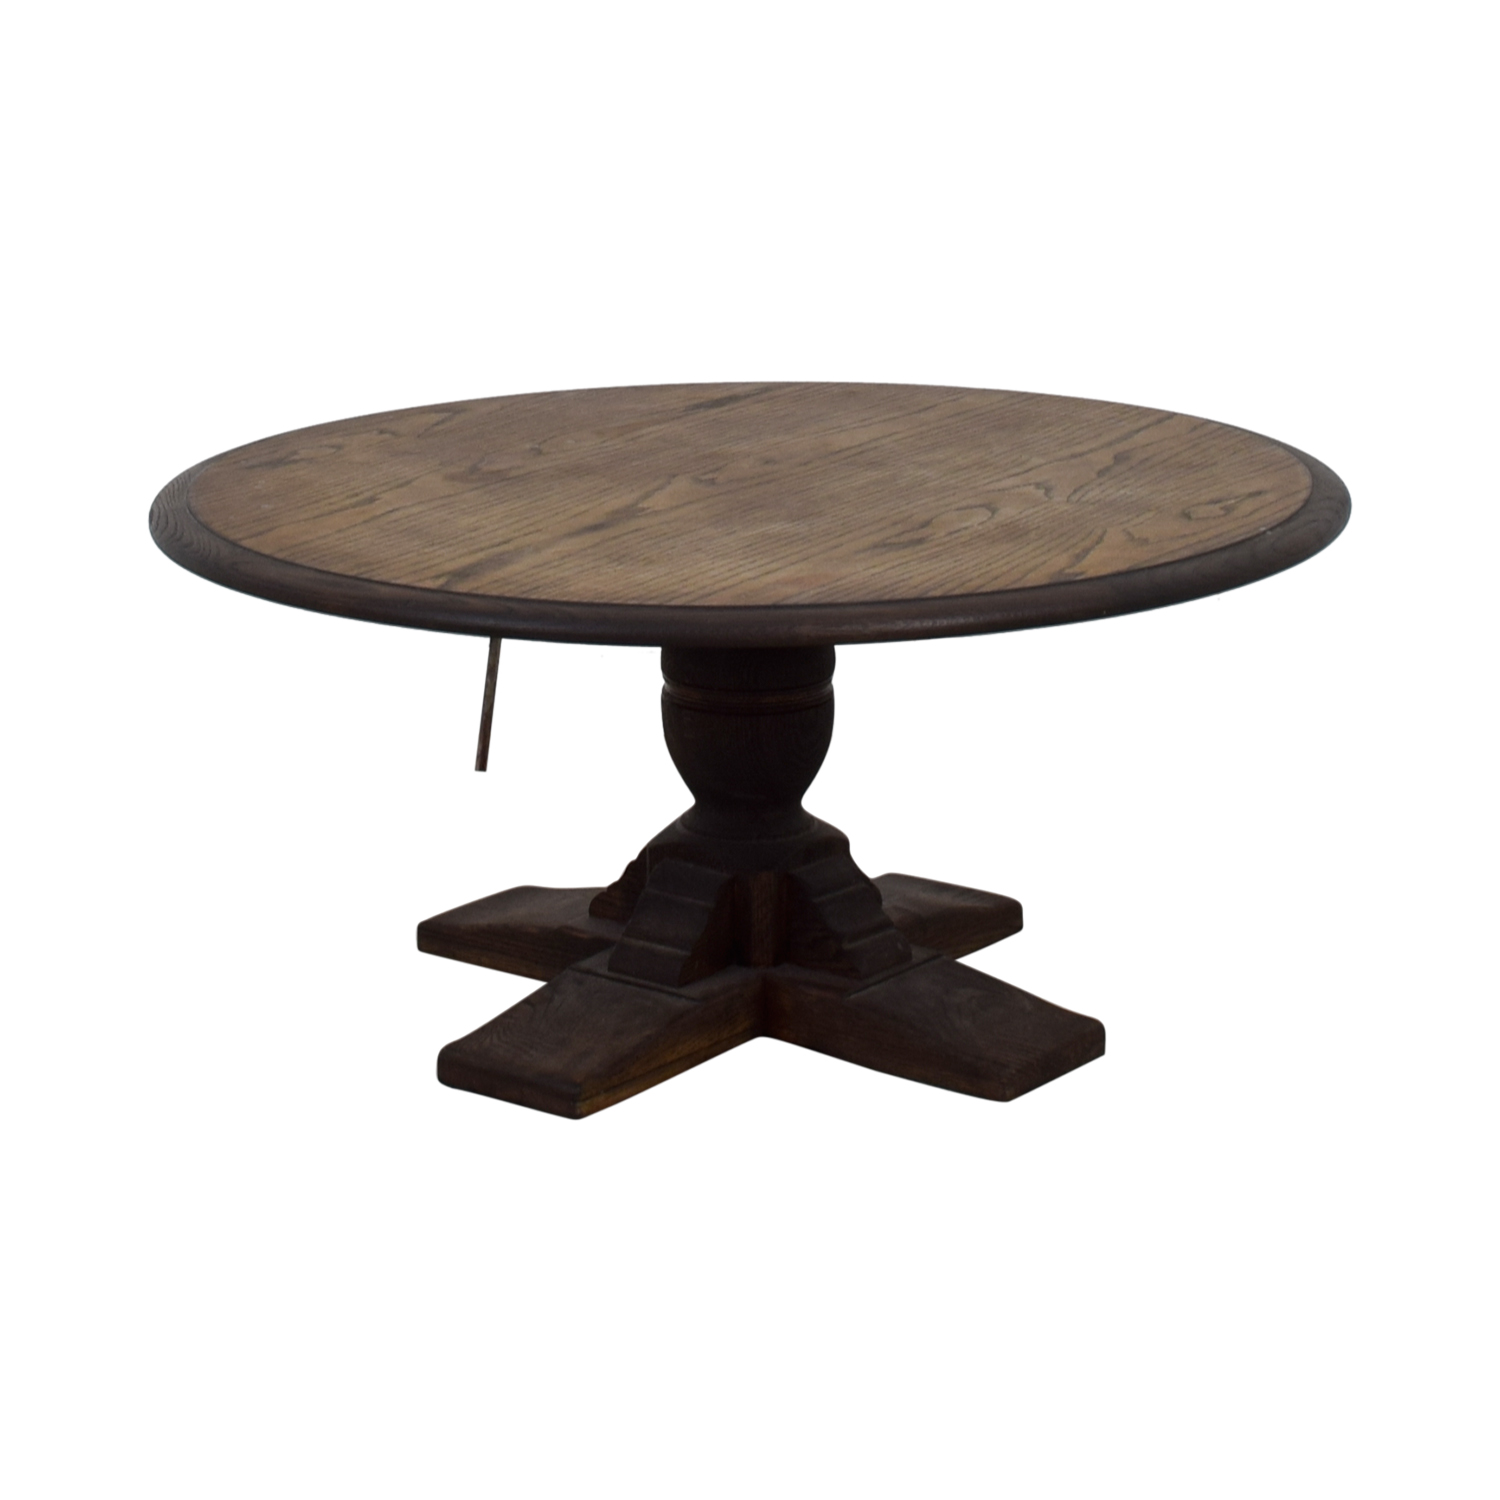 Antique Coffee Table Brown, Dark Brown